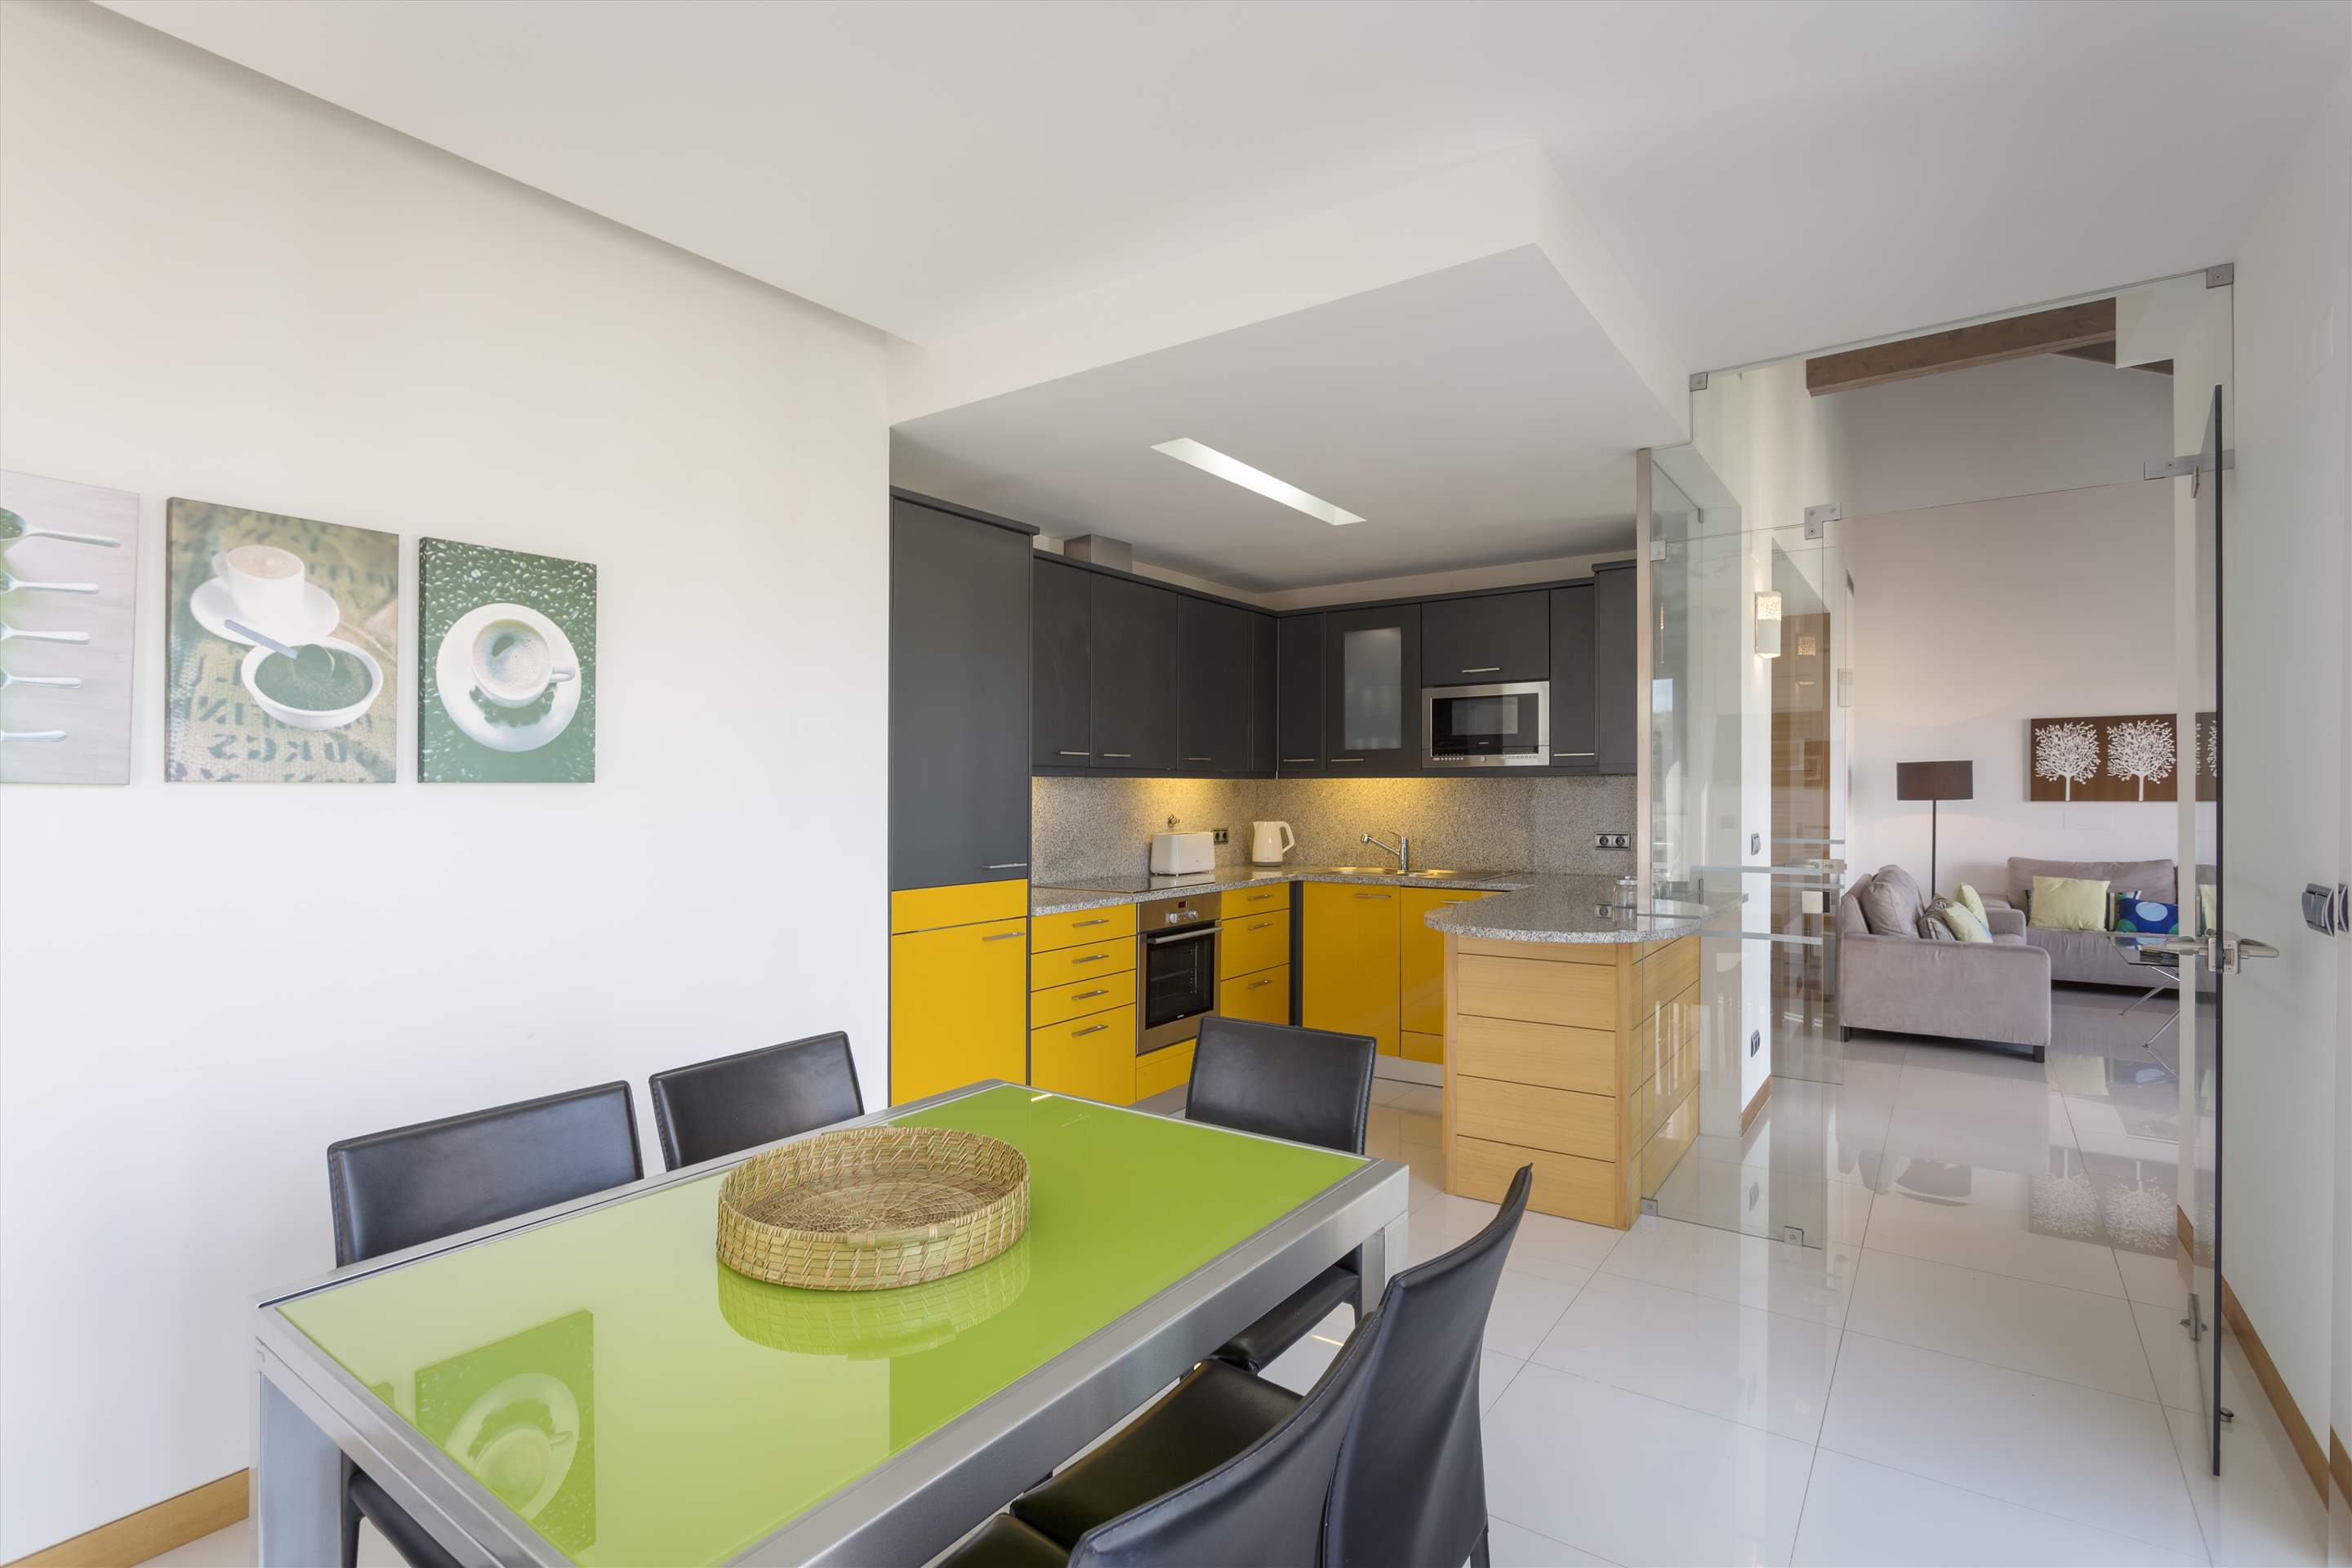 Apartment Rosie, 2 bedroom apartment in Vale do Lobo, Algarve Photo #7